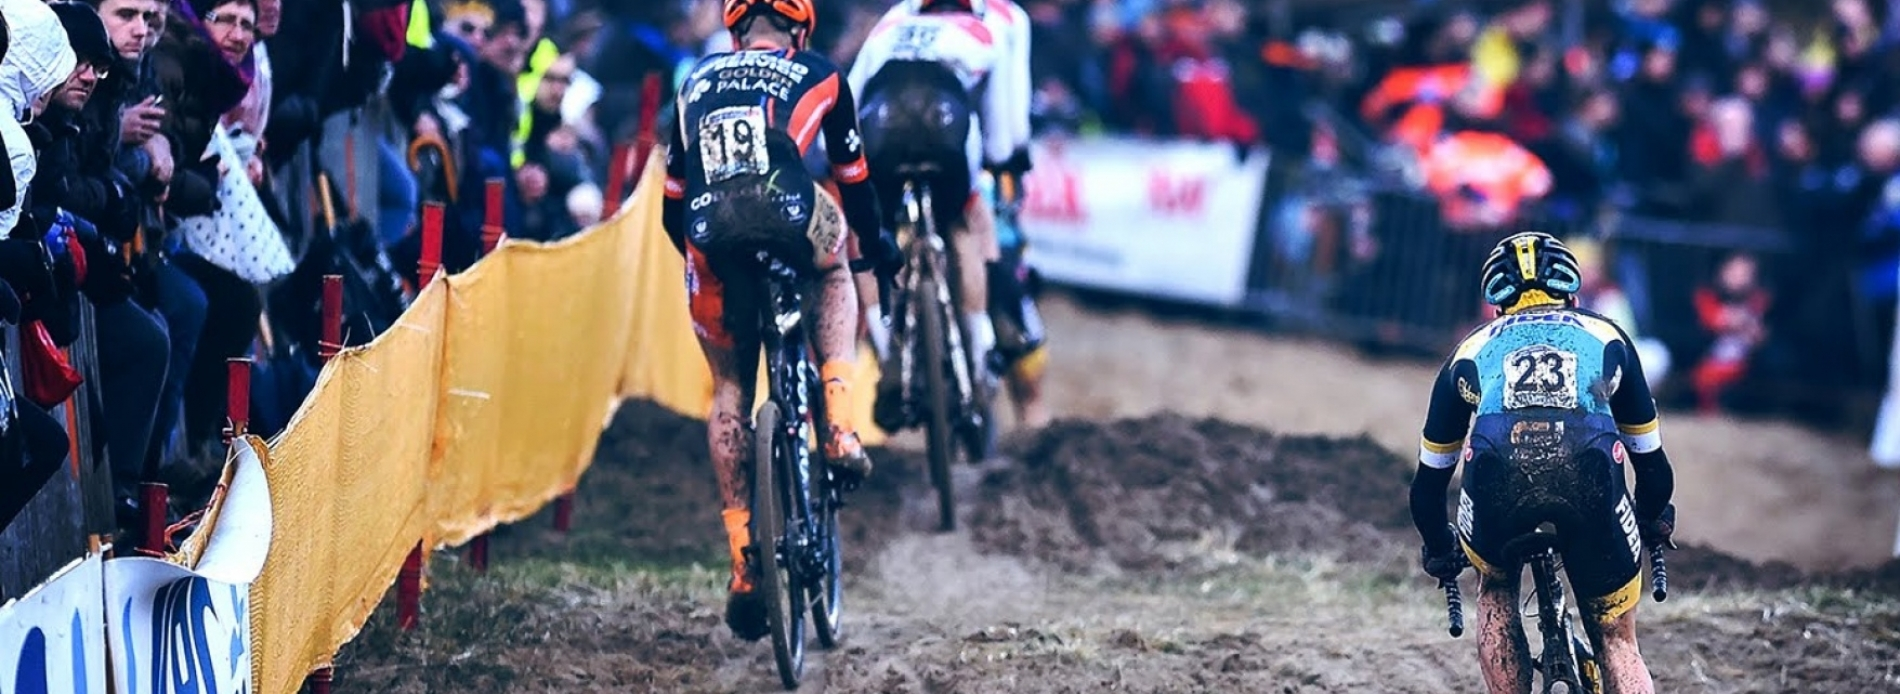 Cycling - Cyclocross